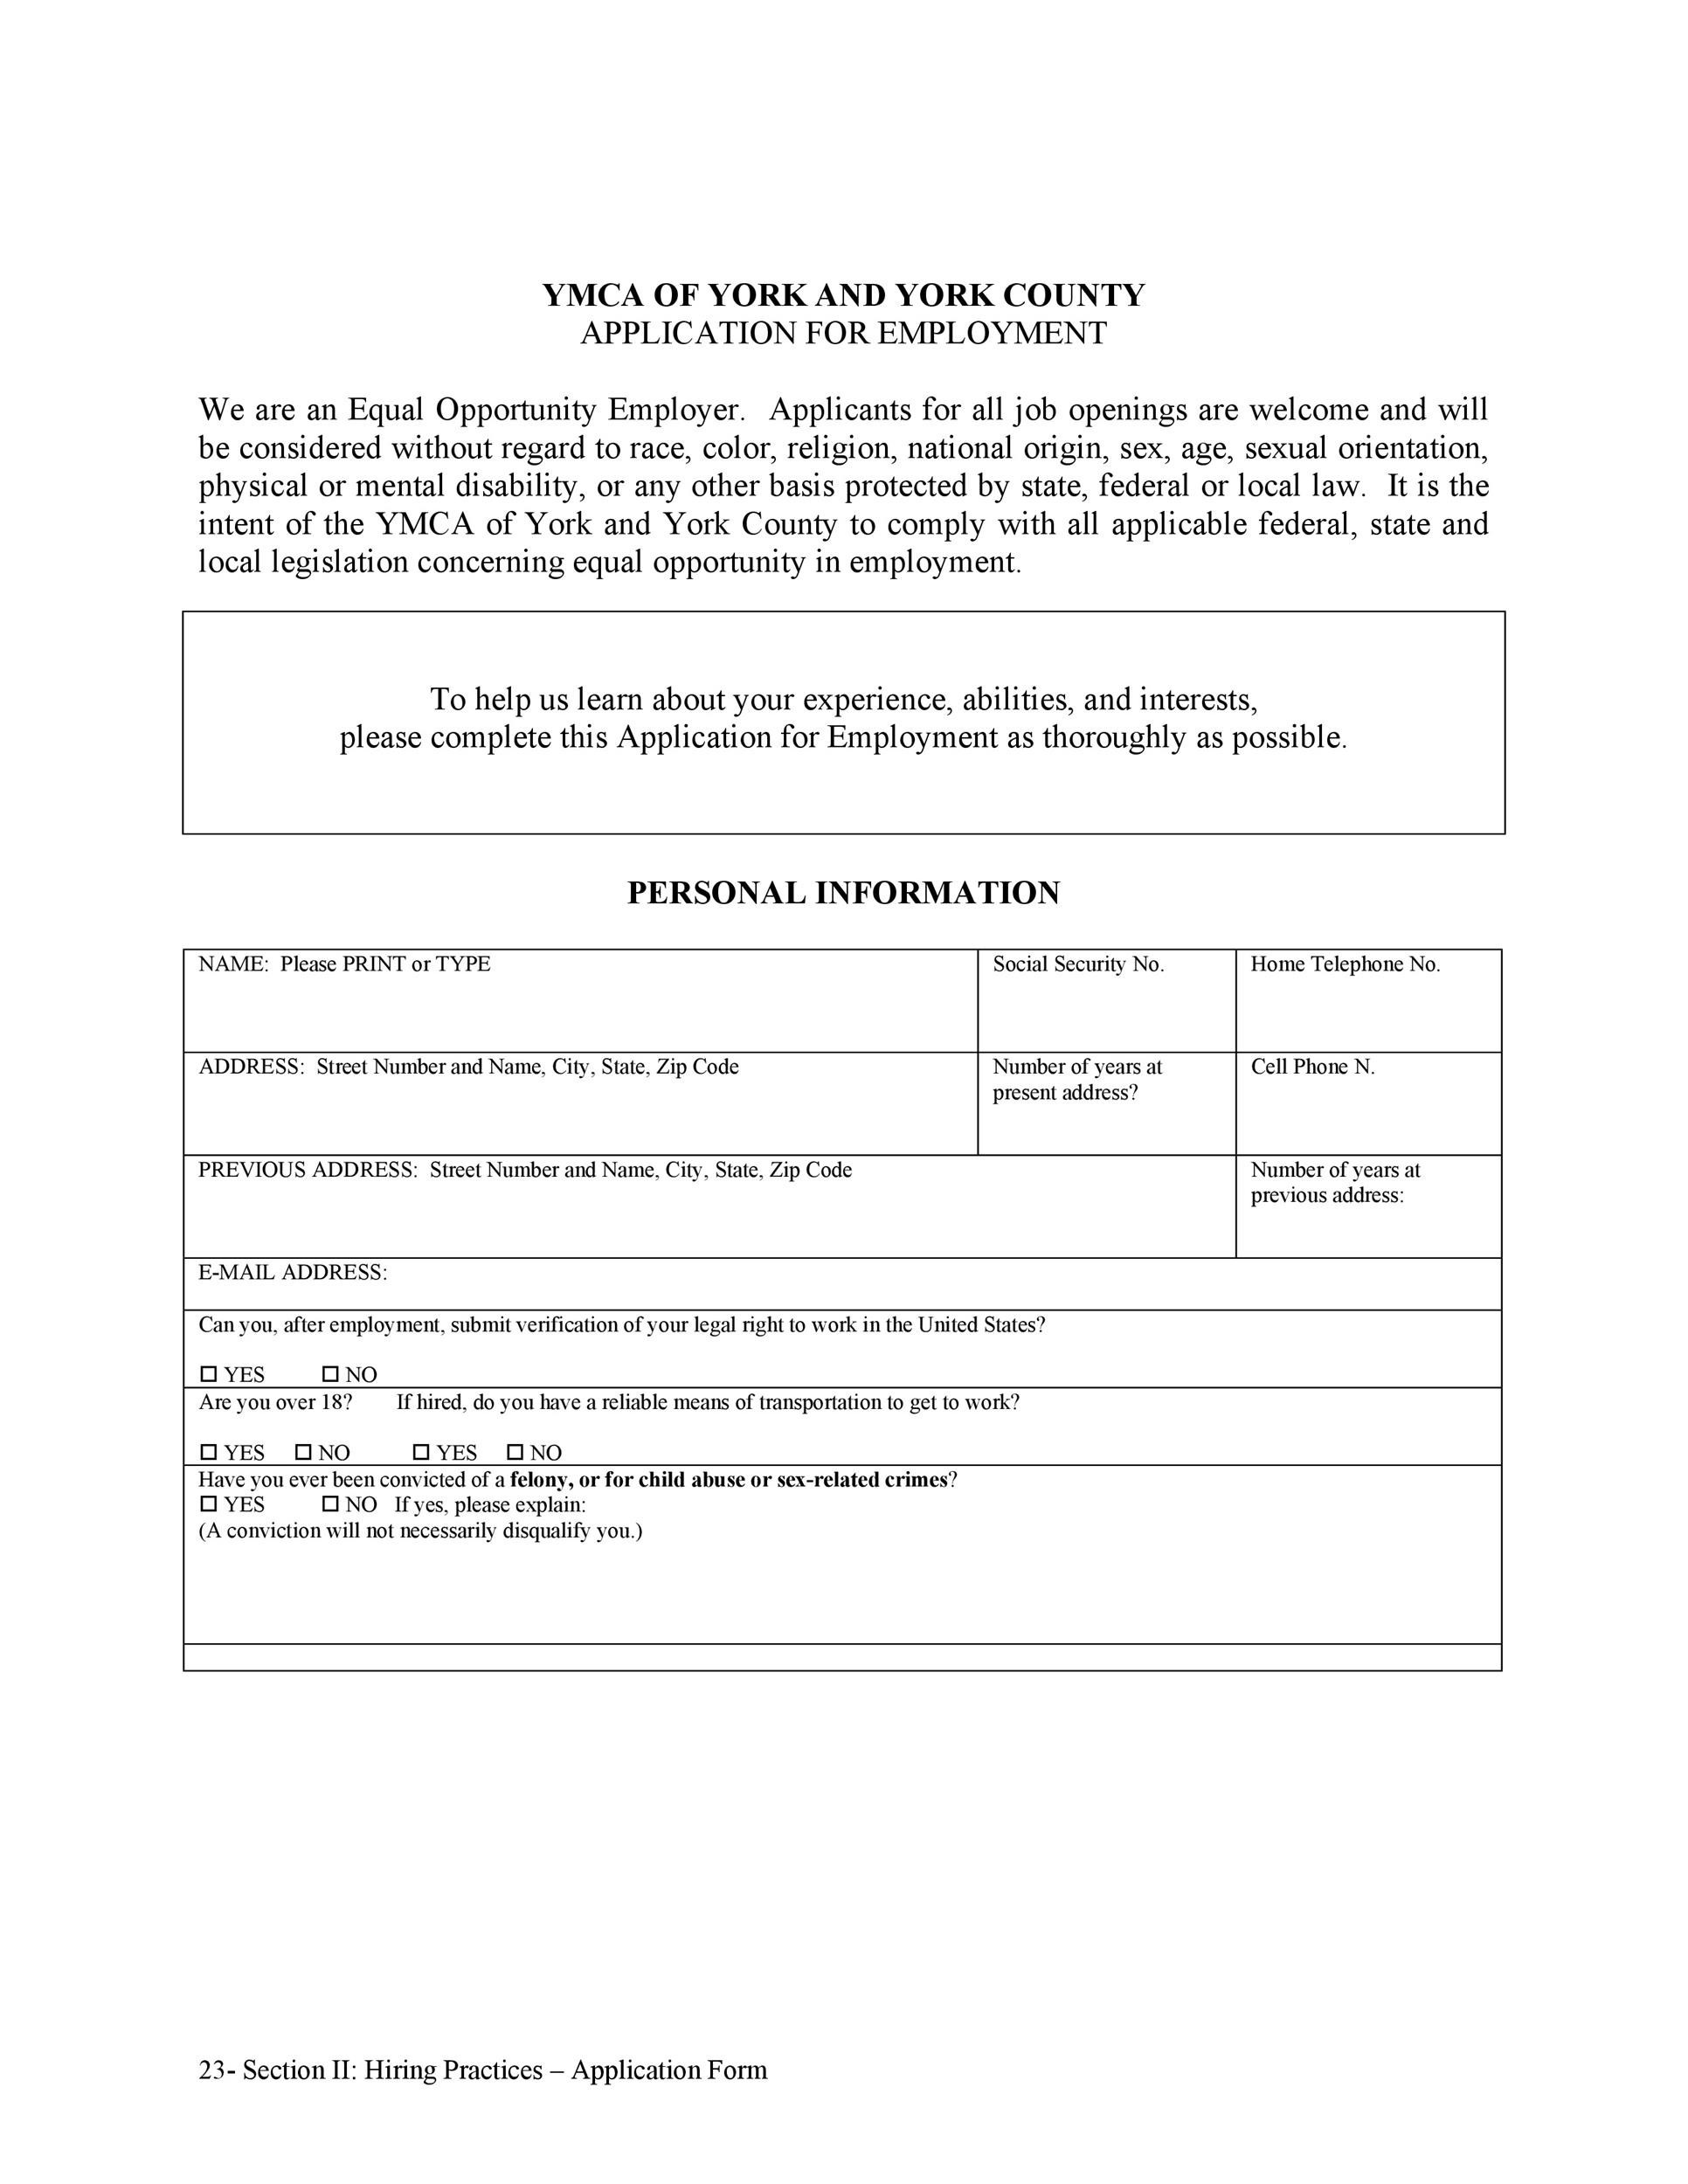 recruitment request form